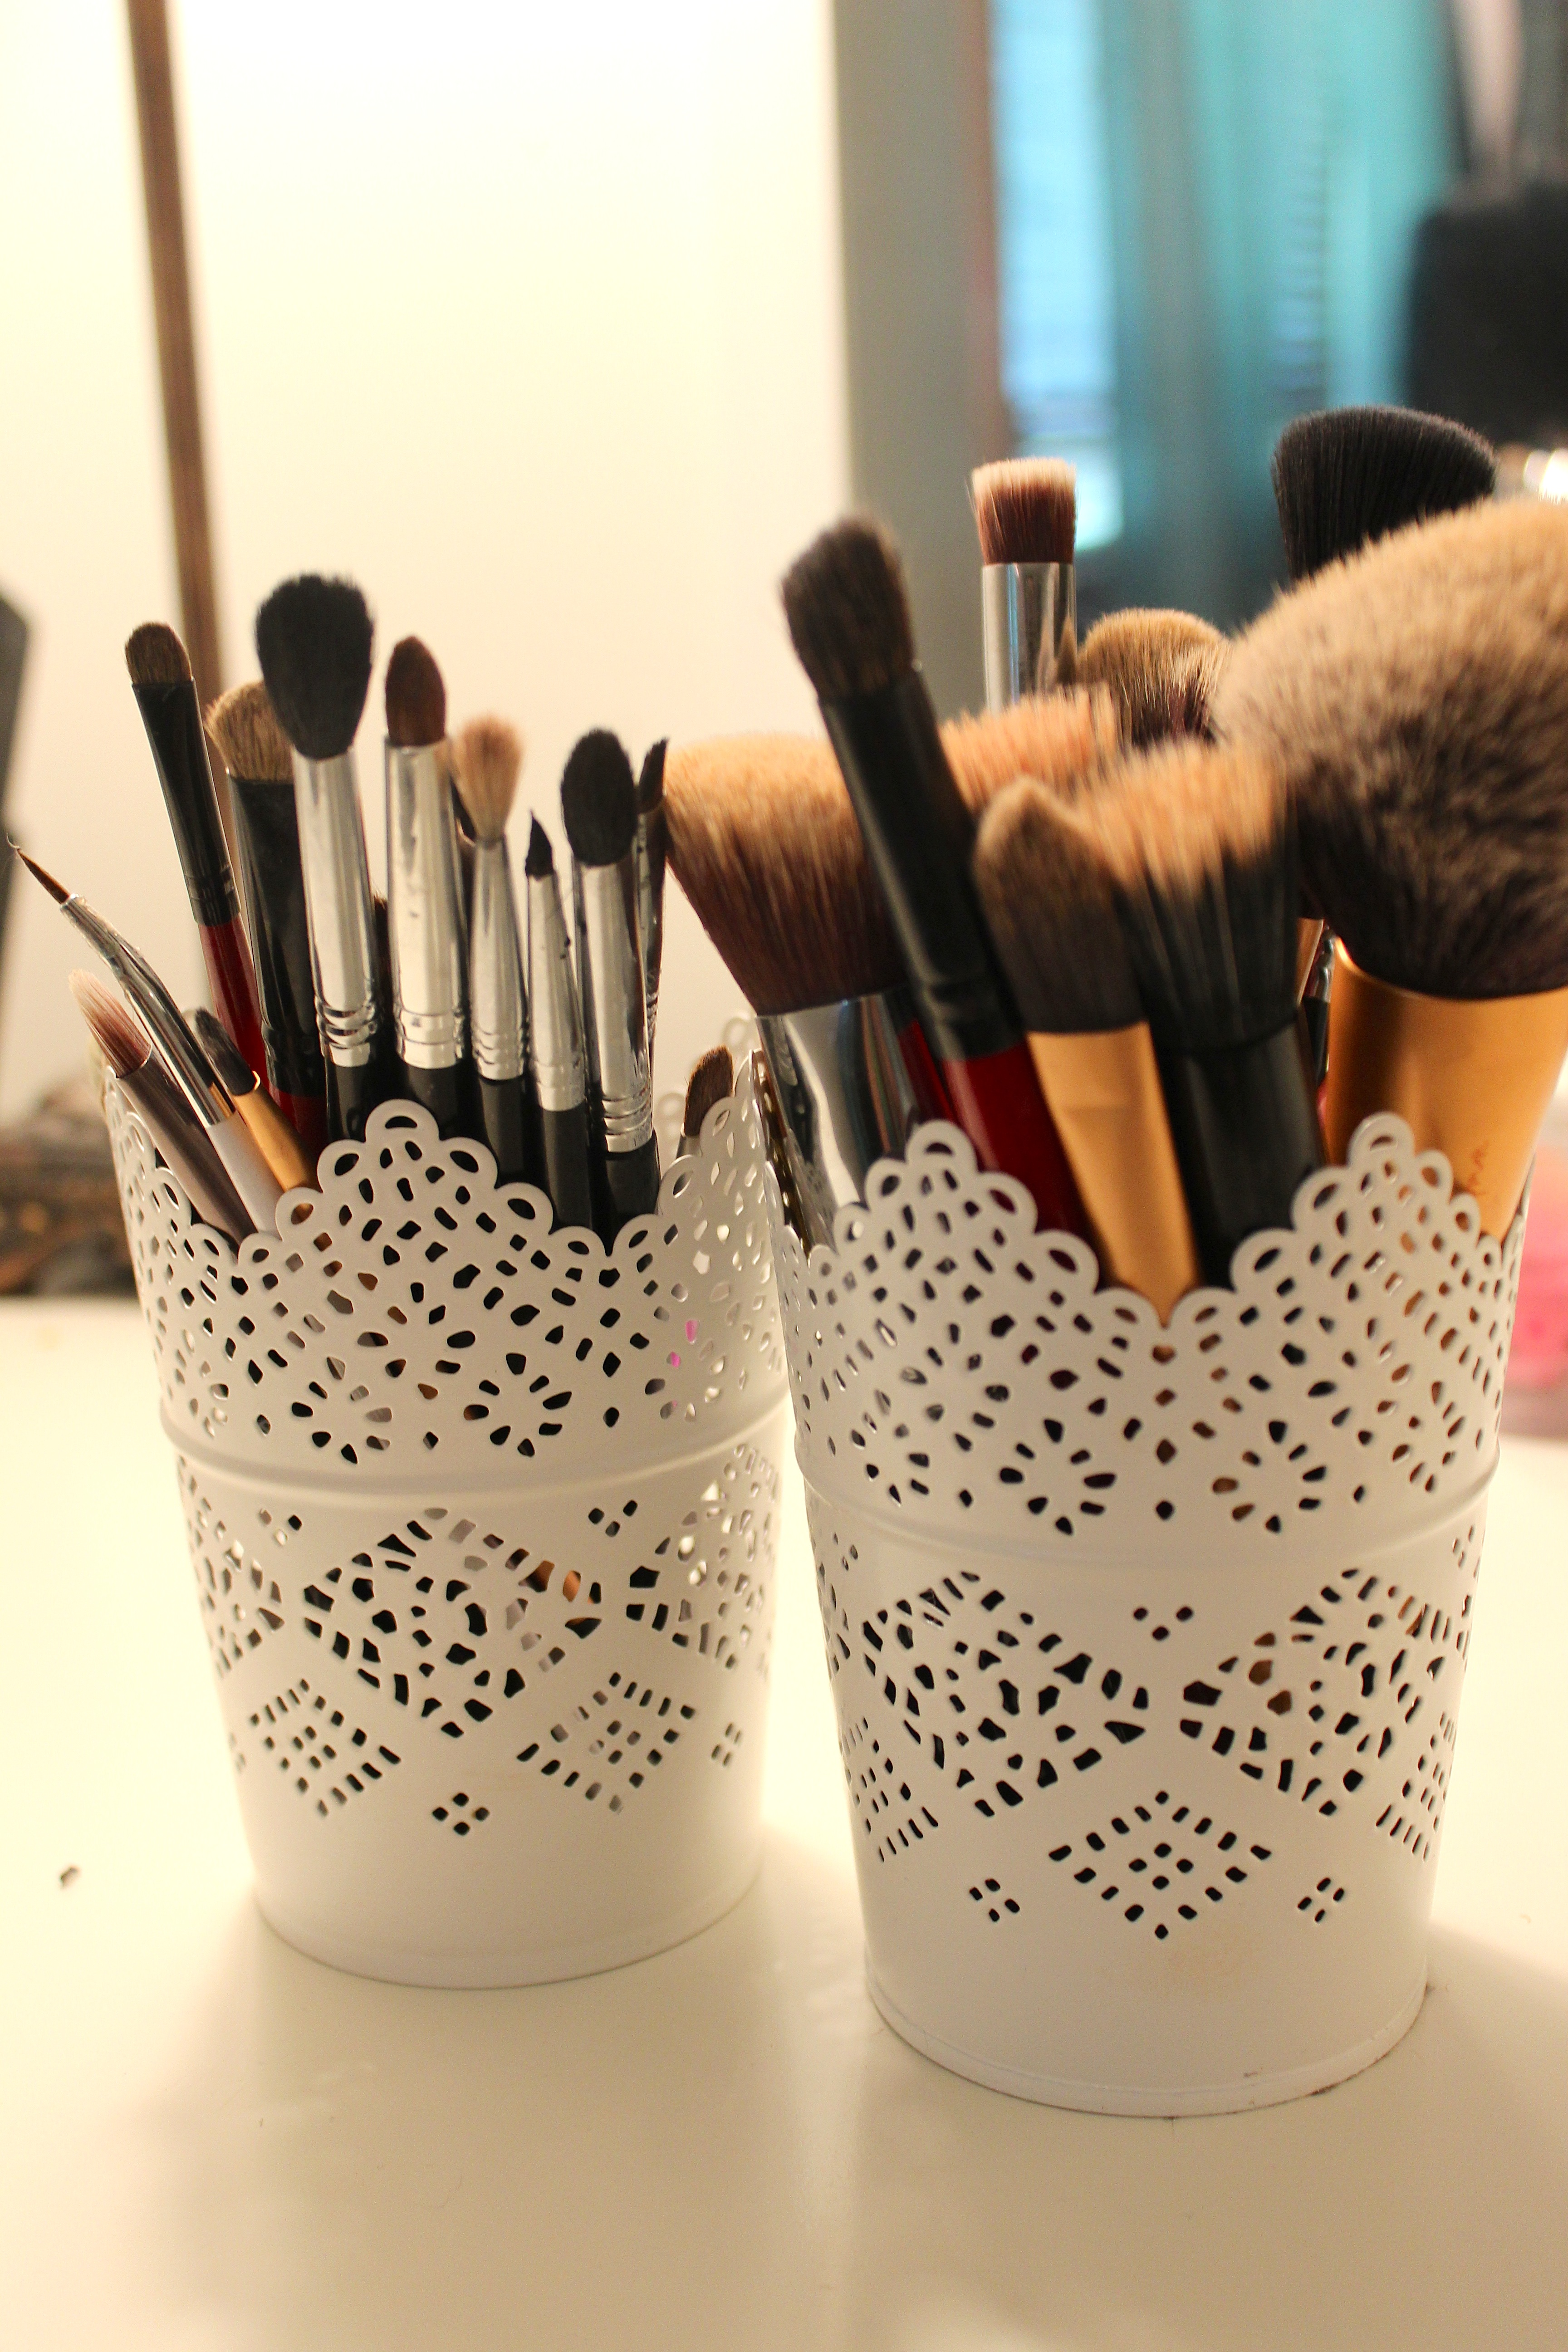 Deep Clean Your Makeup Brushes!